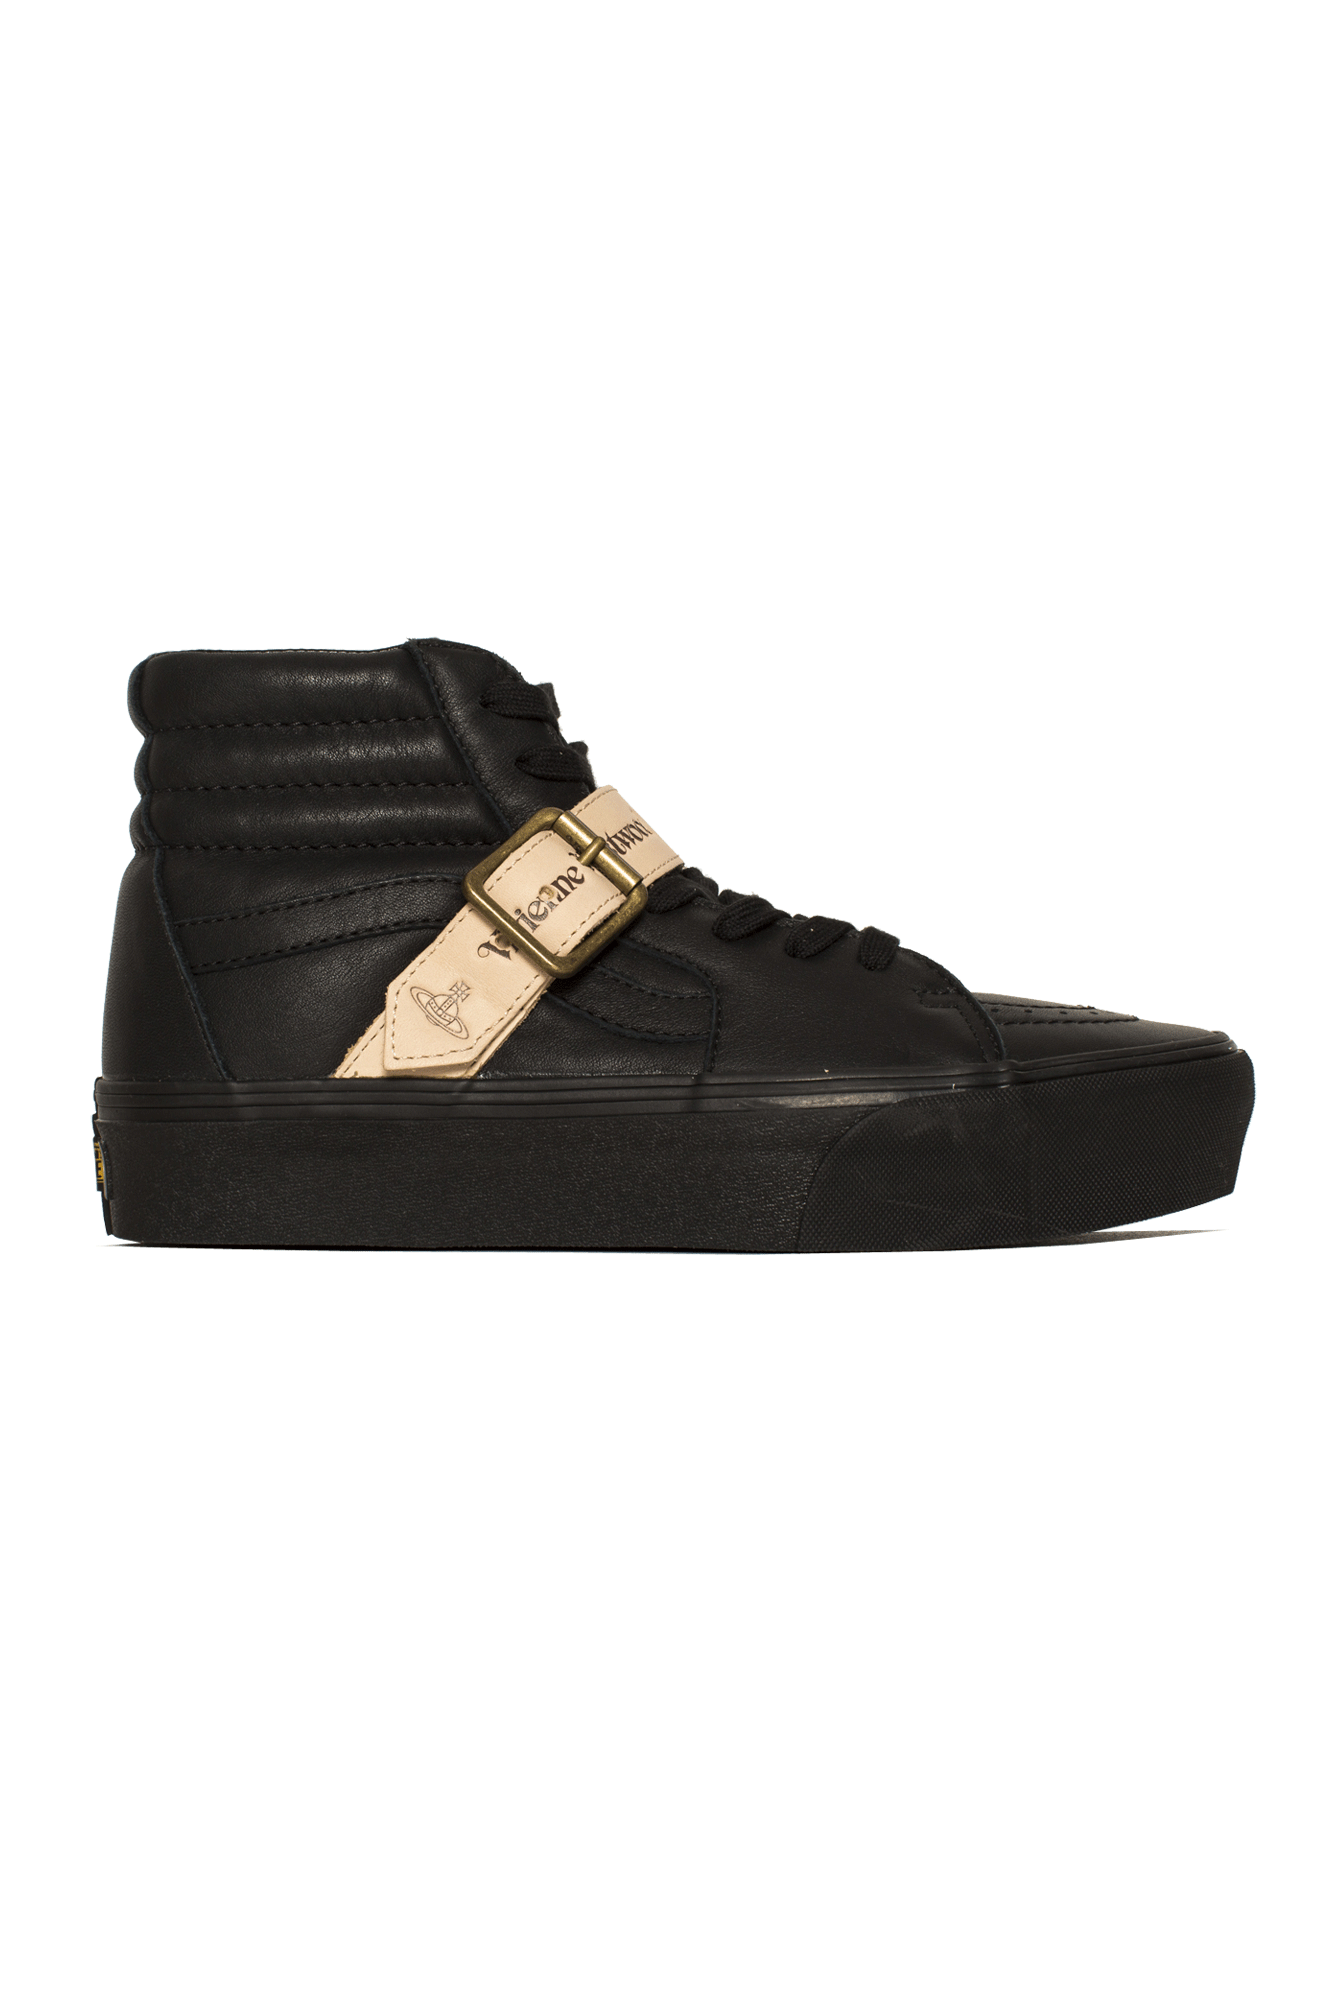 Sk8-Hi Platform PS by Vivienne Westwood Black